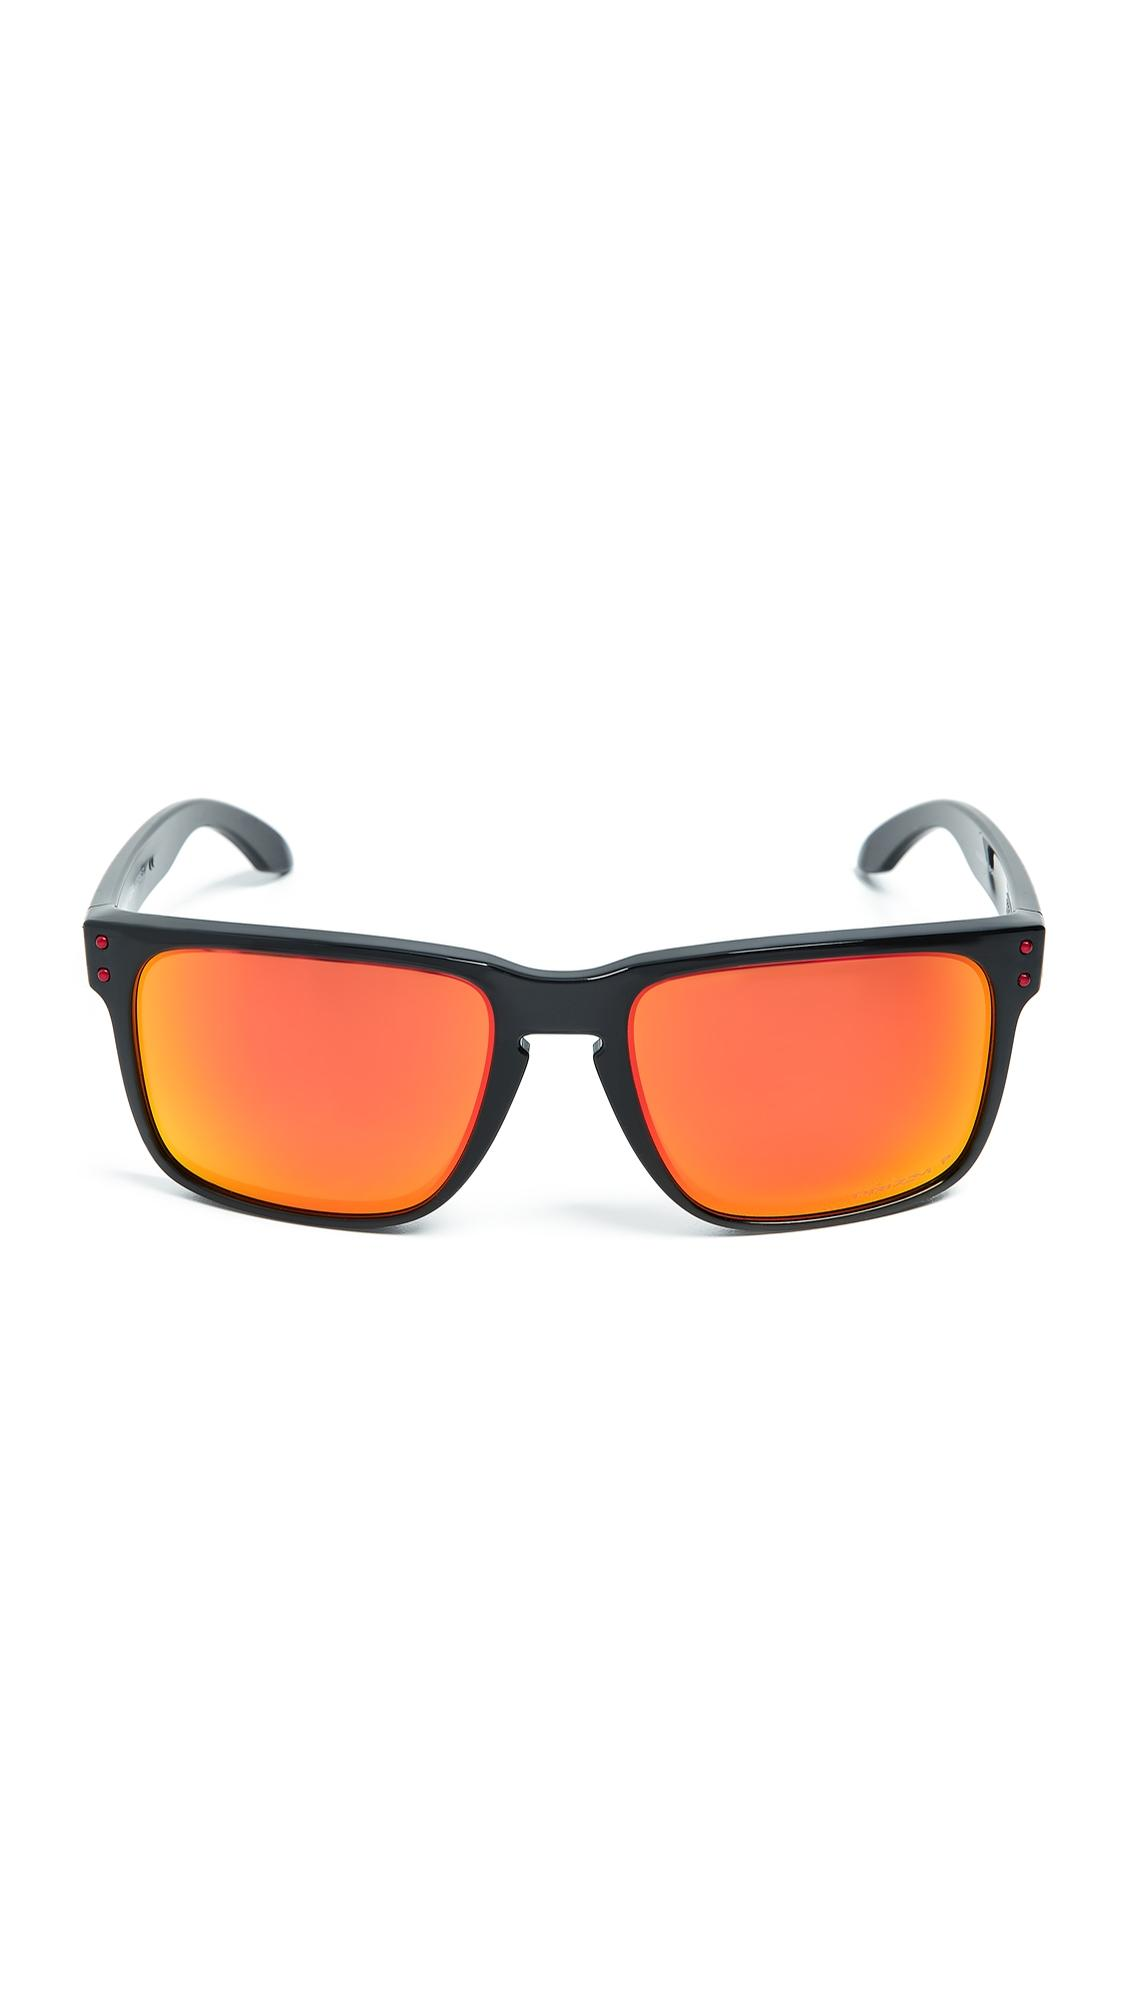 dc3524ca8e8fd Oakley Holbrook Xl Polarized Sunglasses In Black Ink Prism Ruby ...